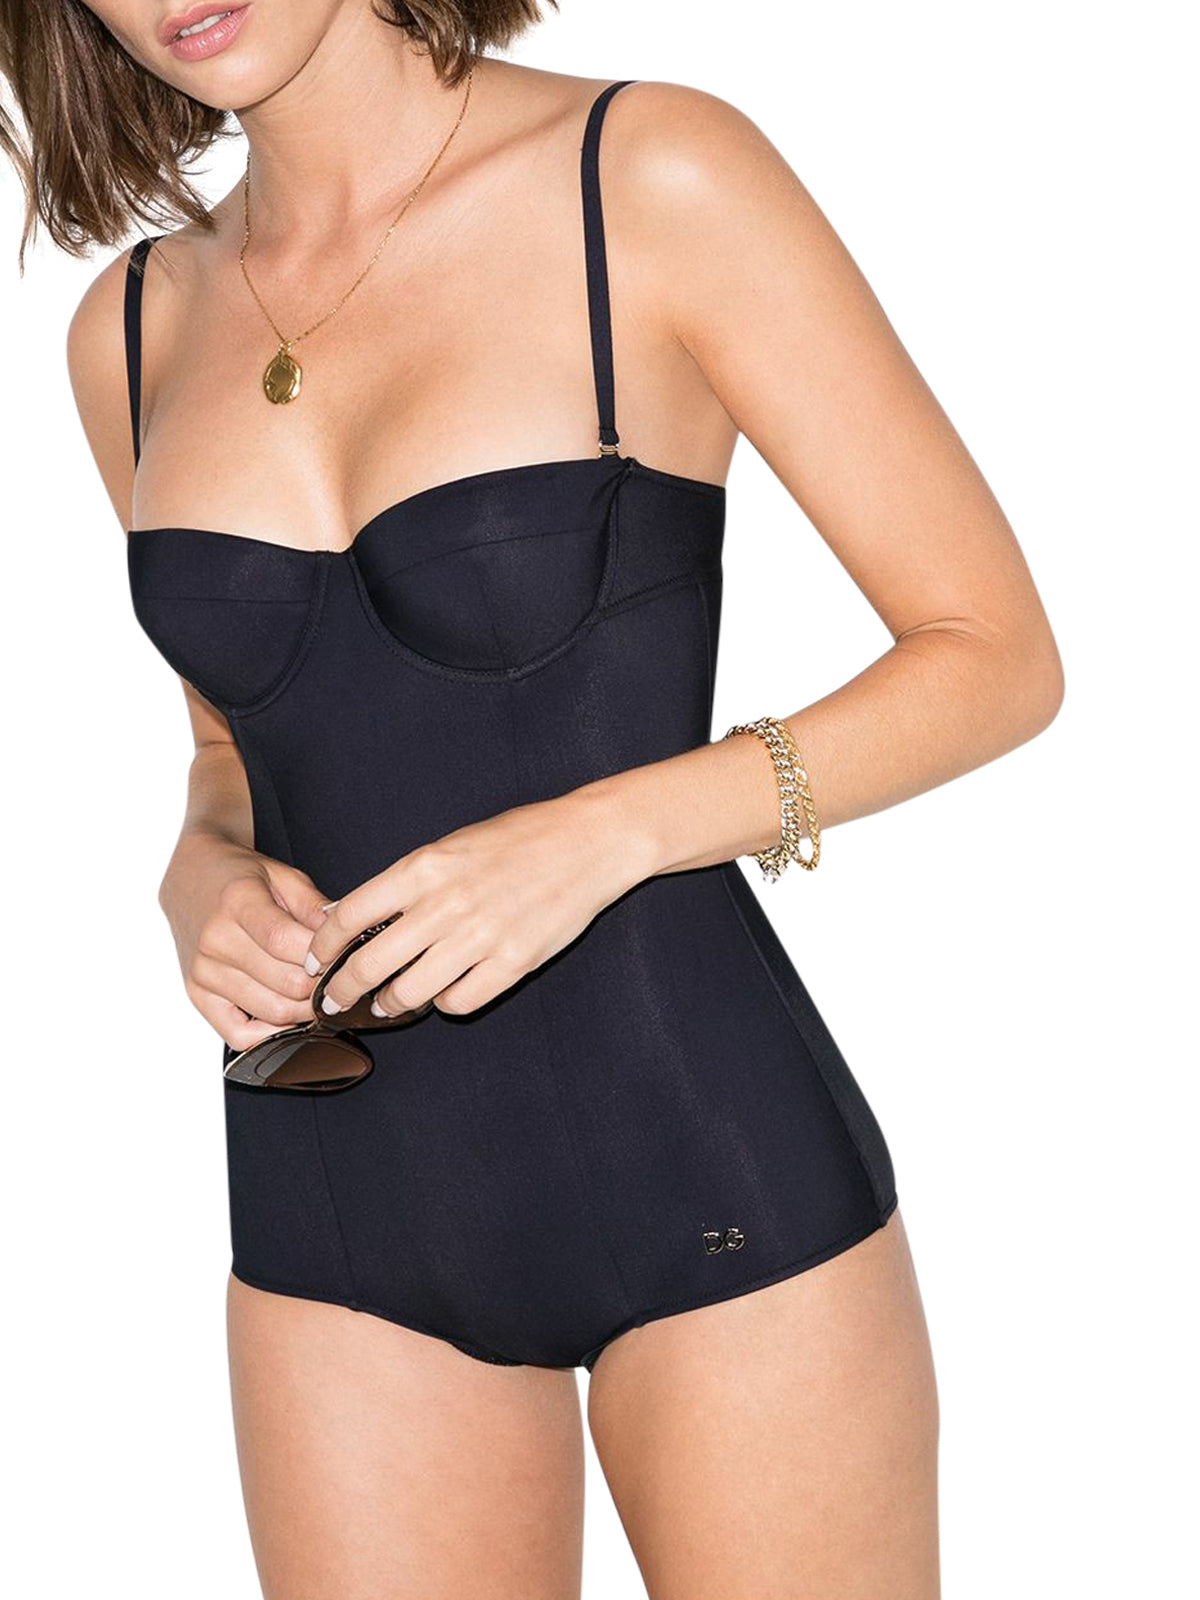 balconette-cup swimsuit